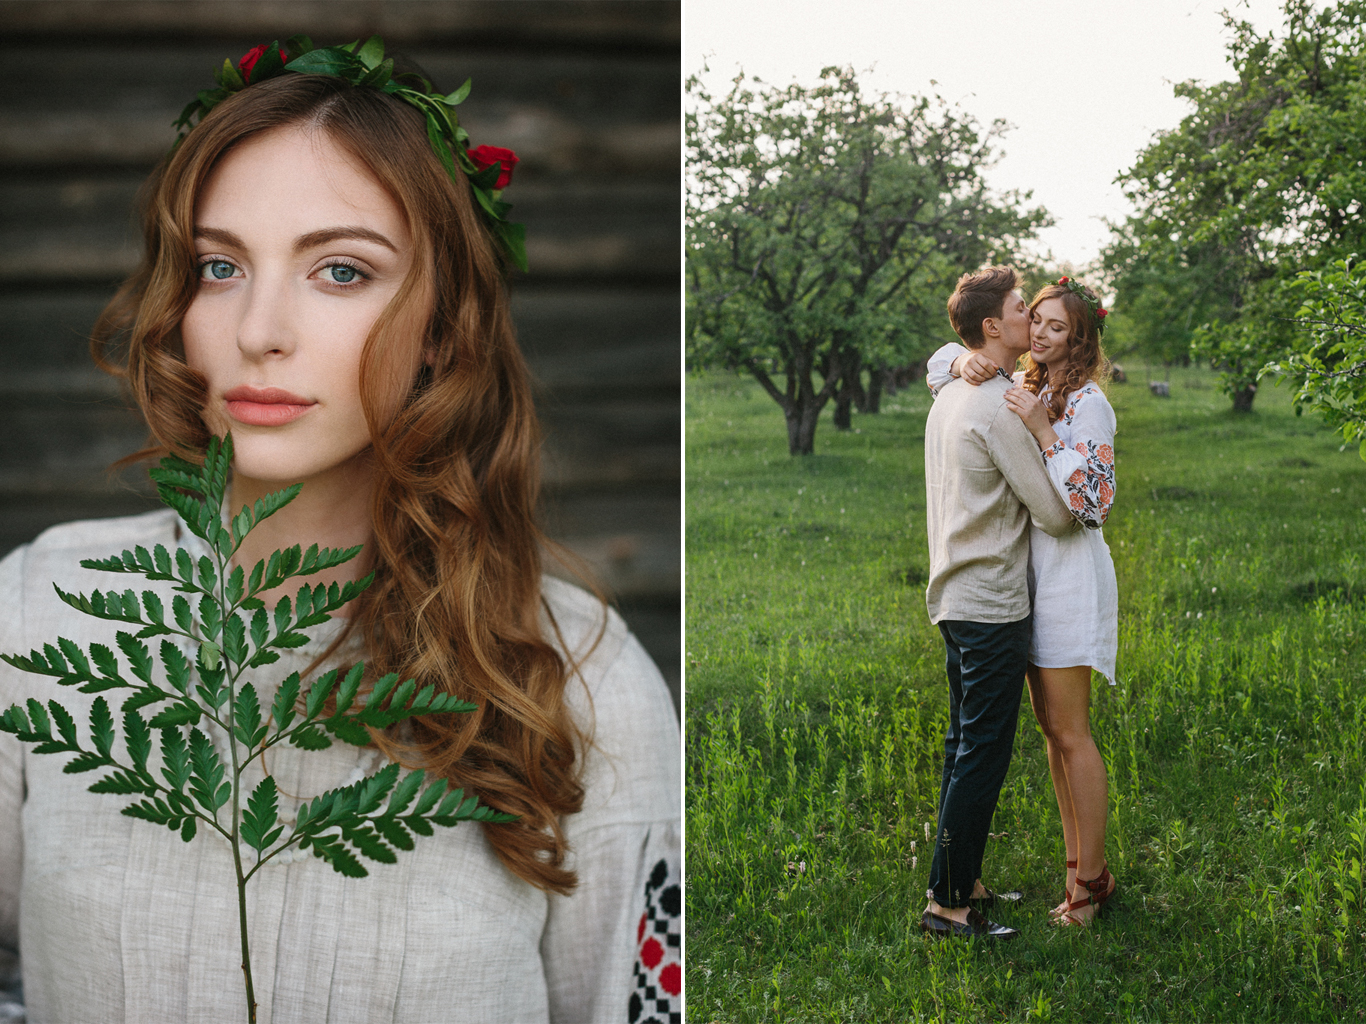 Kupava-Apple-Pie-Weddings-Polina-Illchenko-6